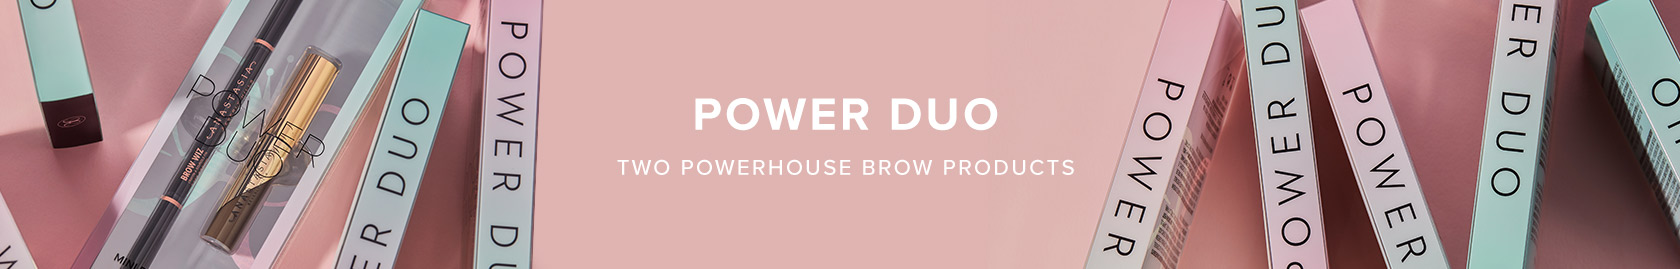 Power Duo - Two Powerhouse Brow Products